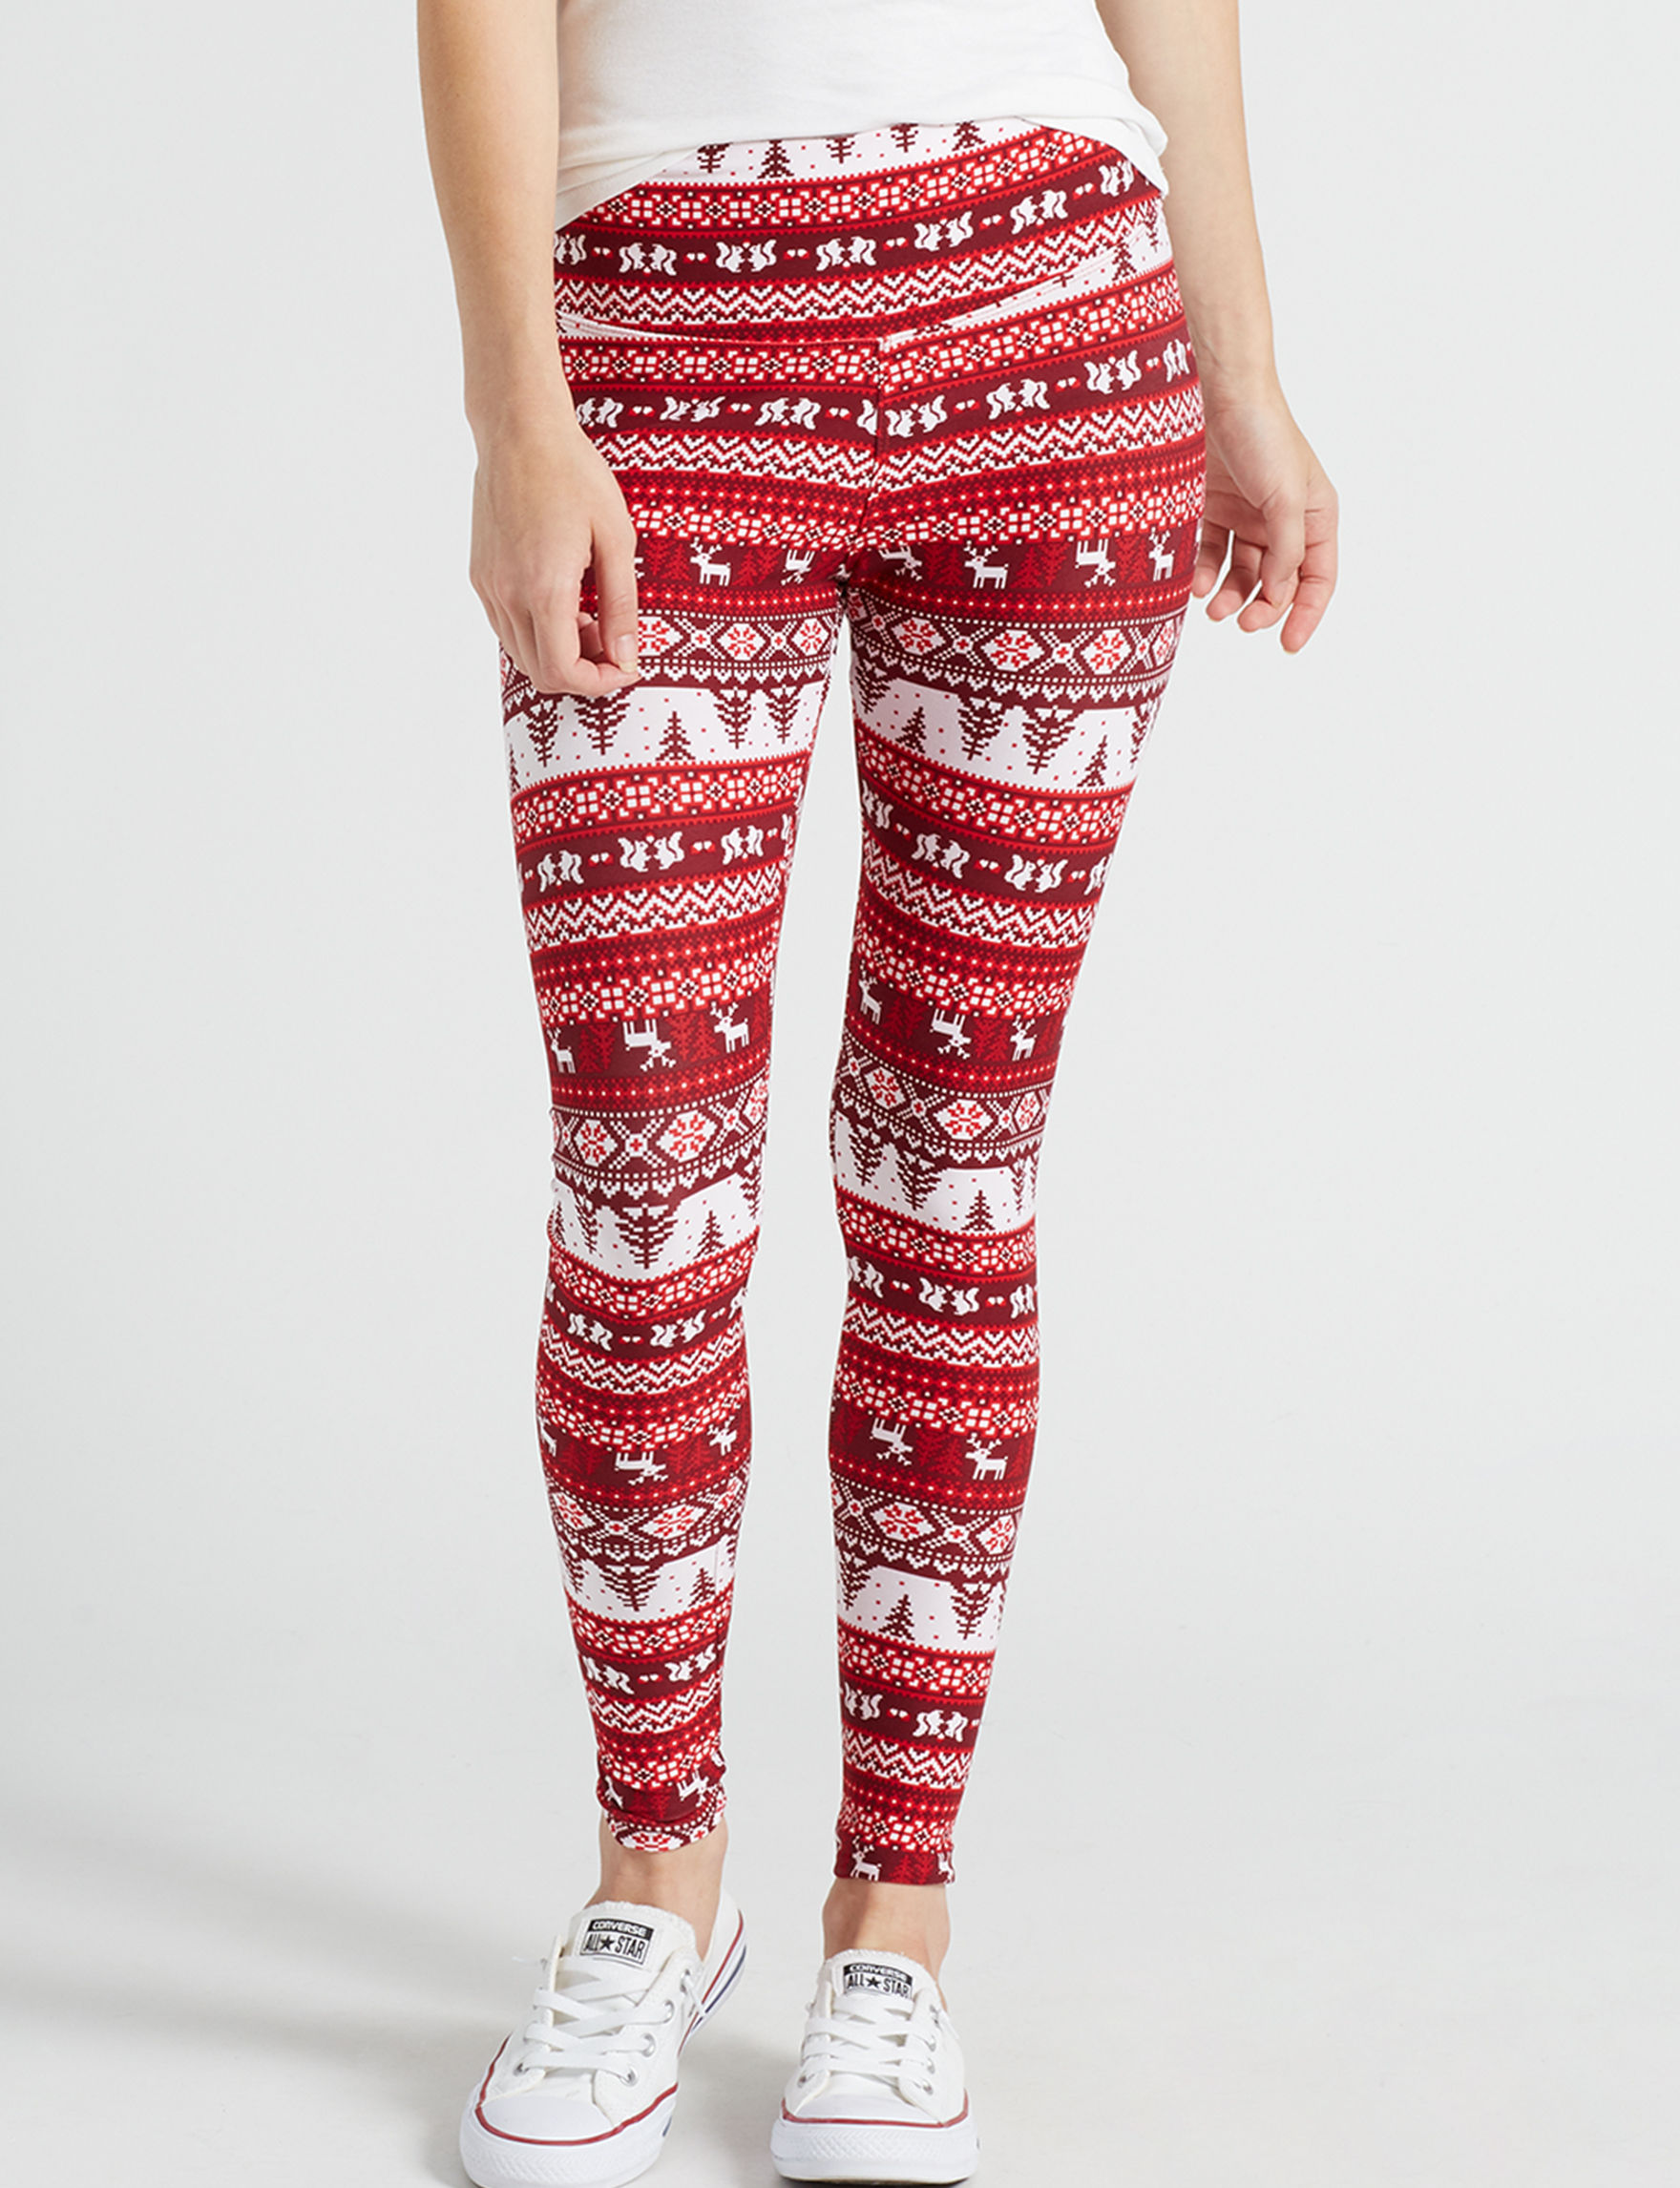 Justify Wine / Ivory Leggings